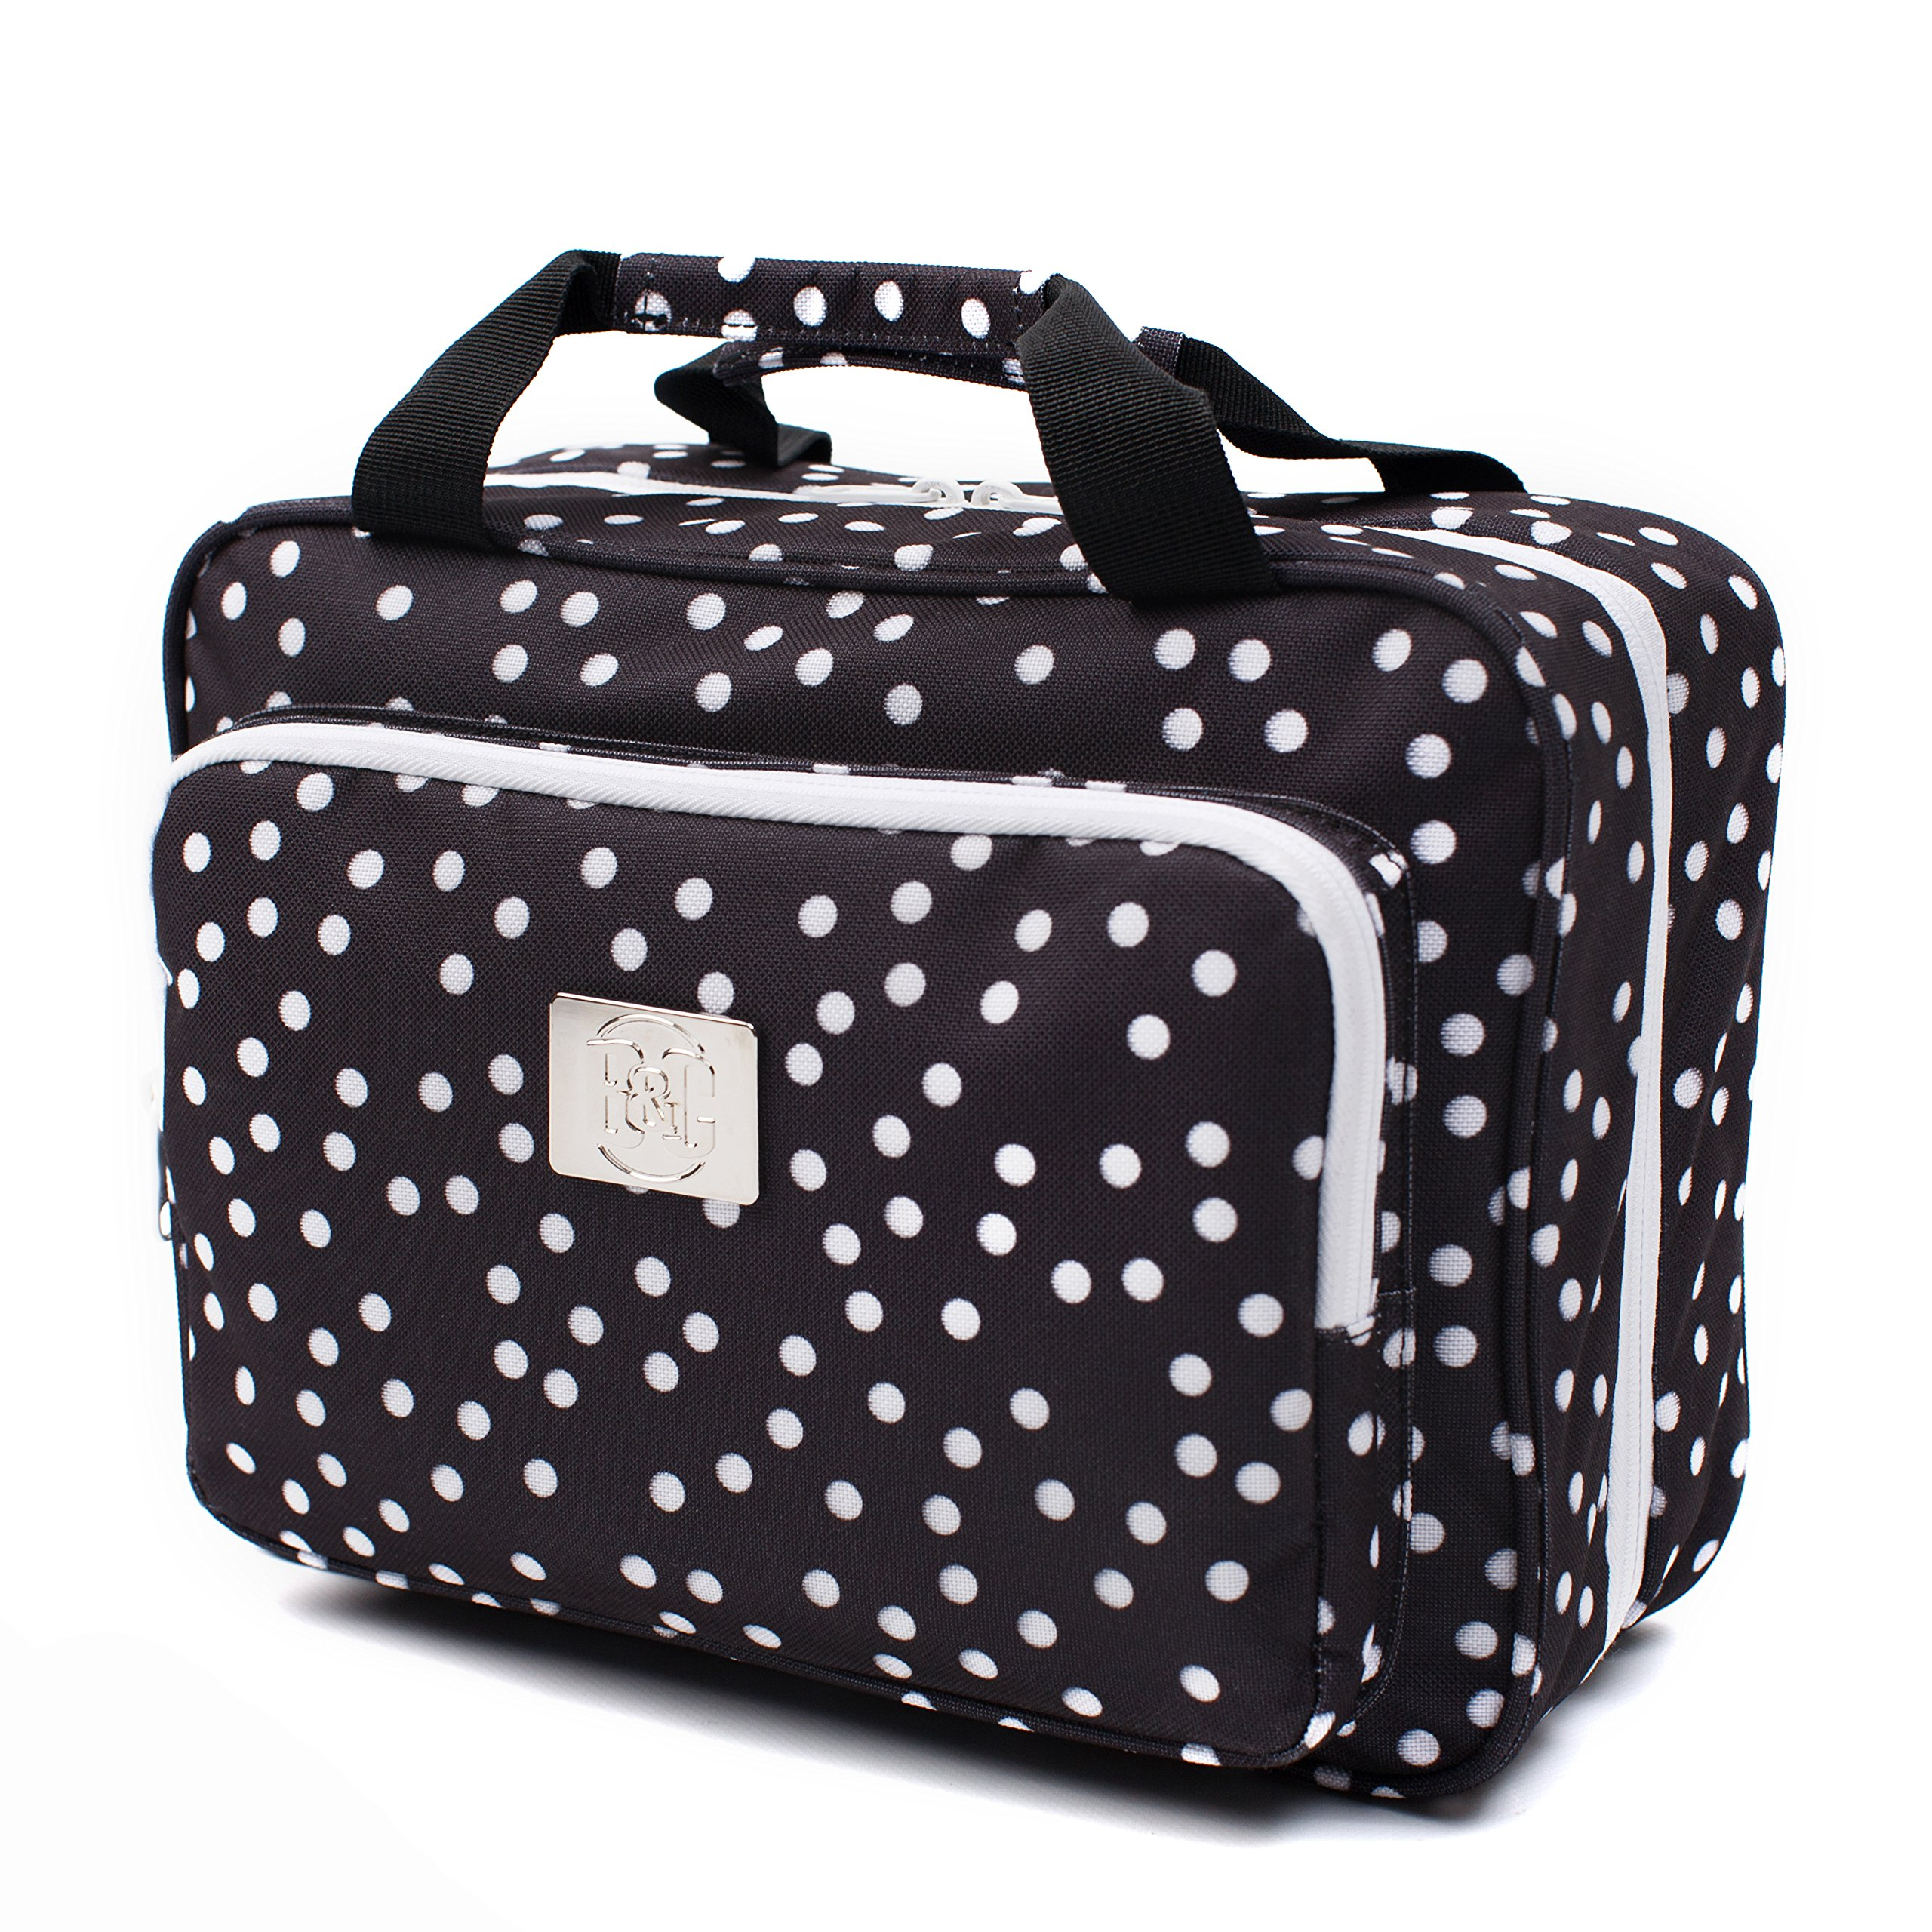 large clear toiletry bag full size toiletry. Black Bedroom Furniture Sets. Home Design Ideas